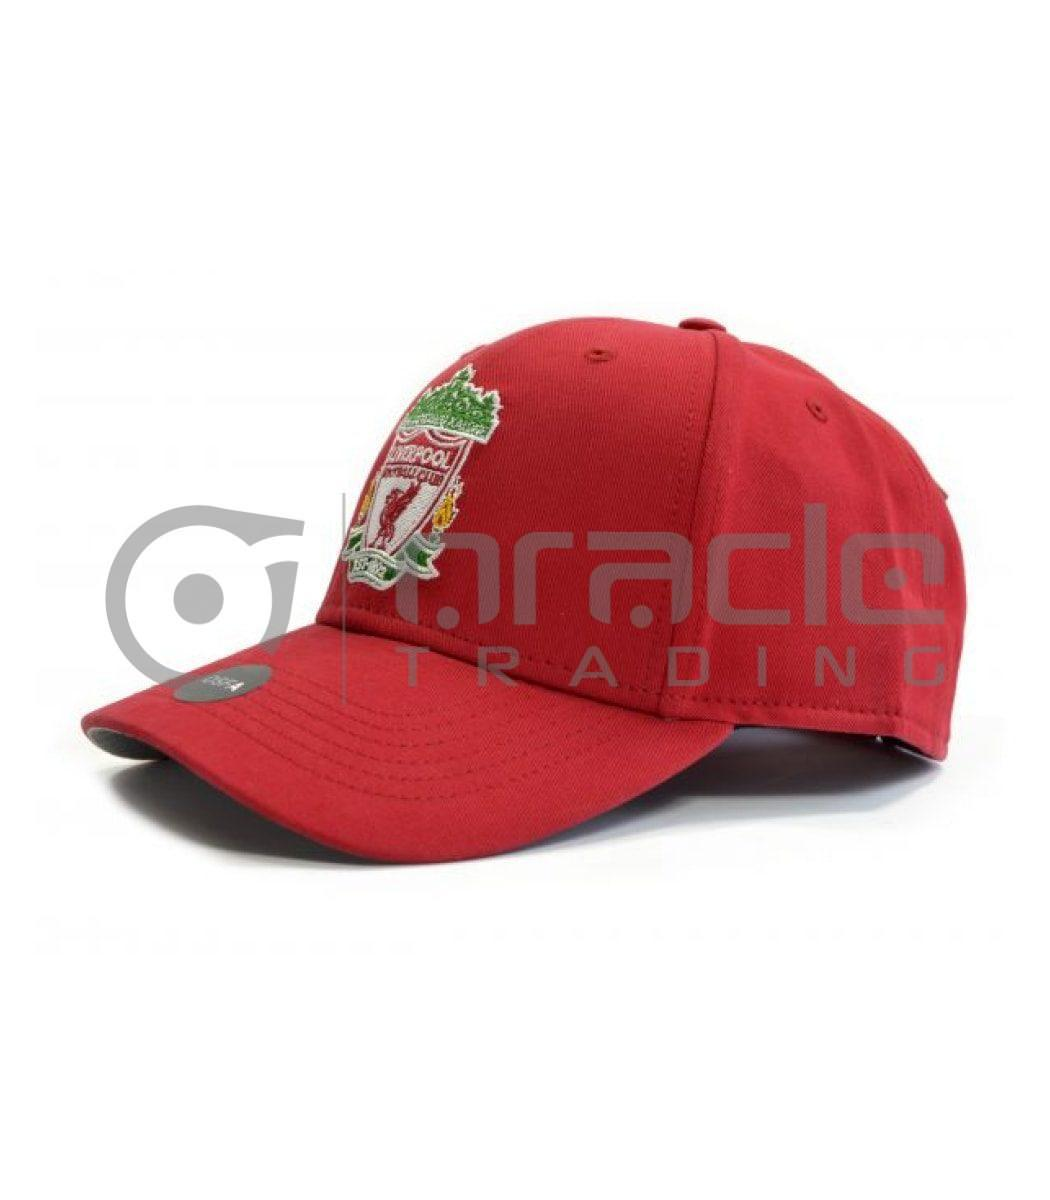 Liverpool Red Crest Hat - Classic - Brand 47